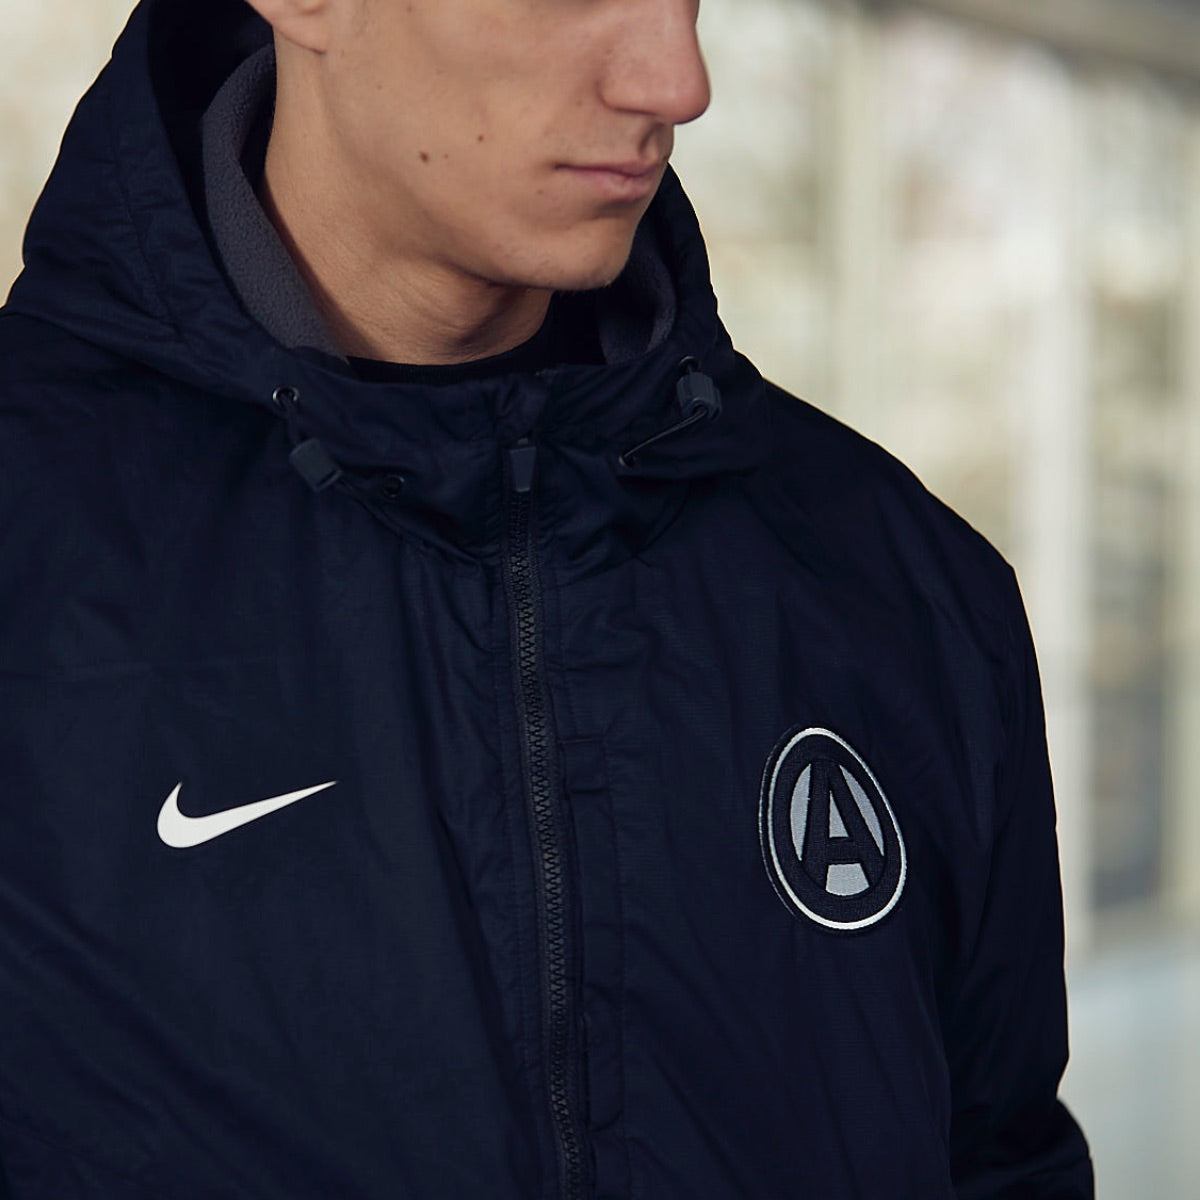 Apollo x Nike Storm Fit Jacket